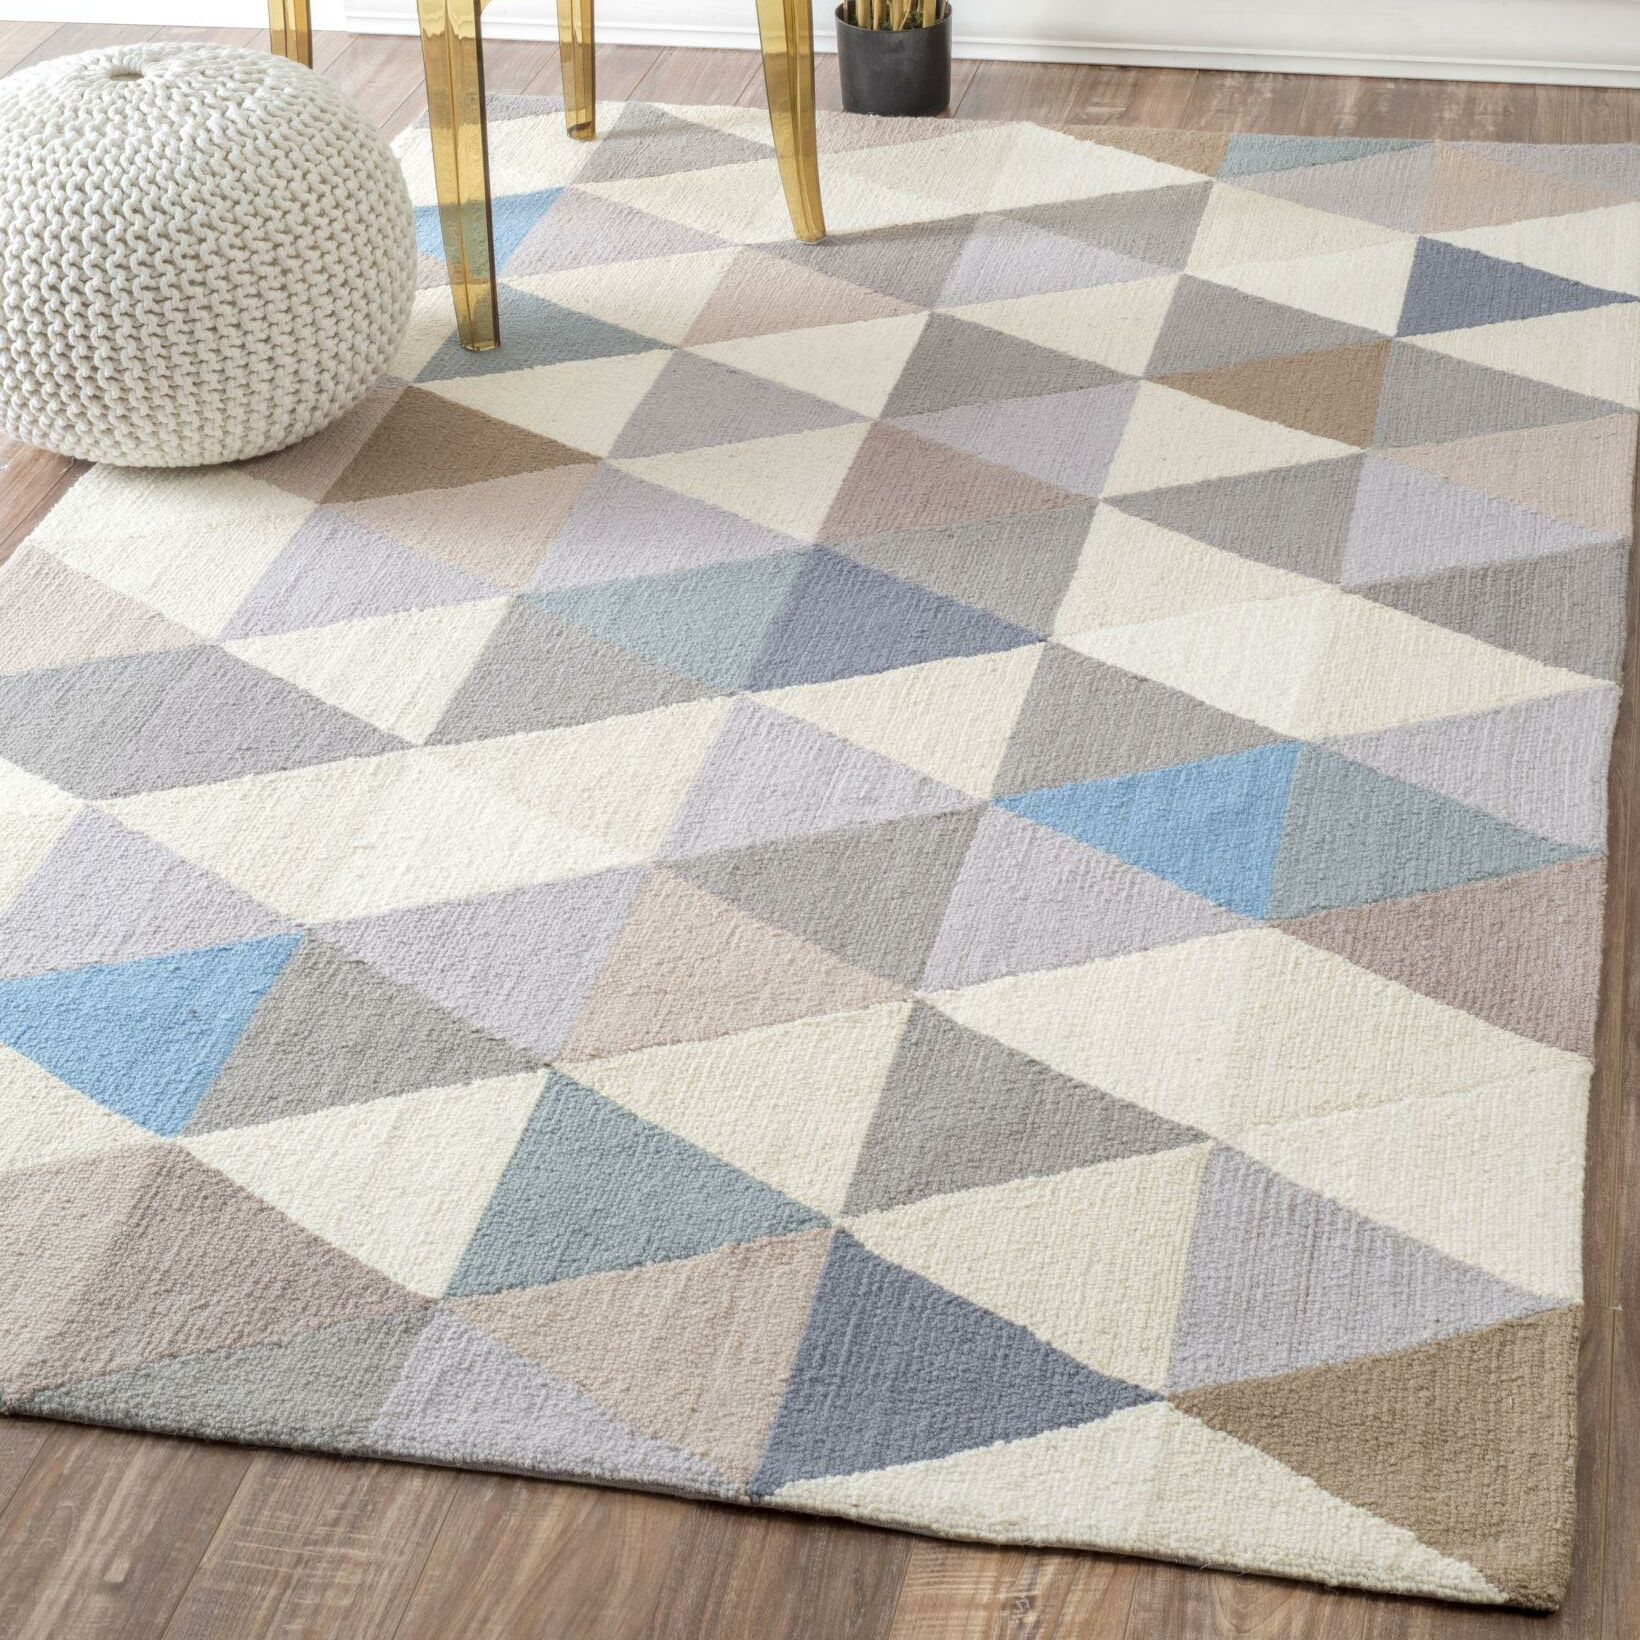 Arvada Anderson Hand-Hooked Gray/Beige Area Rug Rug Size: Rectangle 7'6